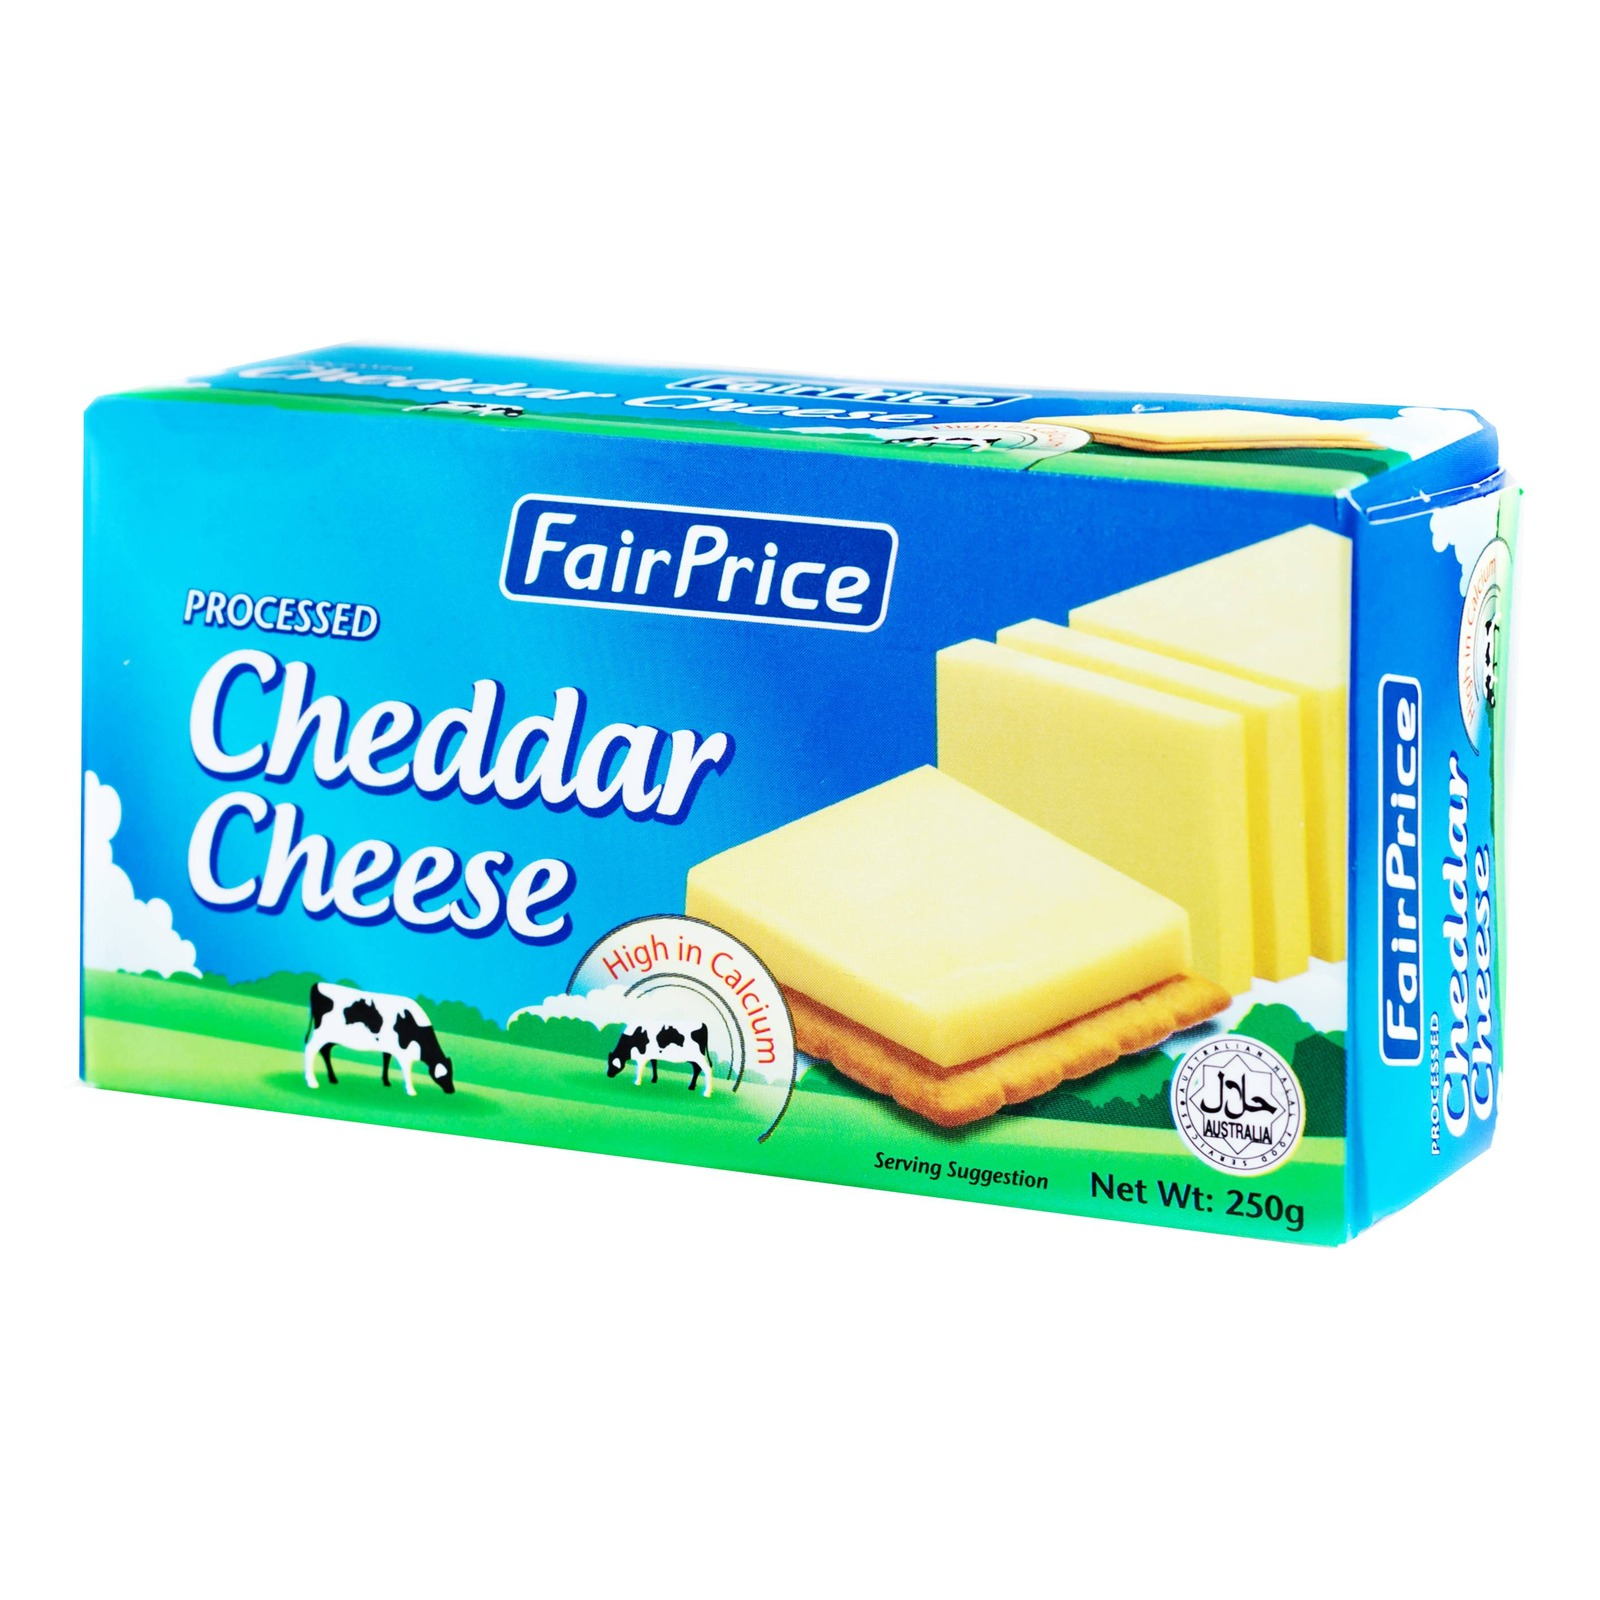 FairPrice Cheese Block - Processed Cheddar